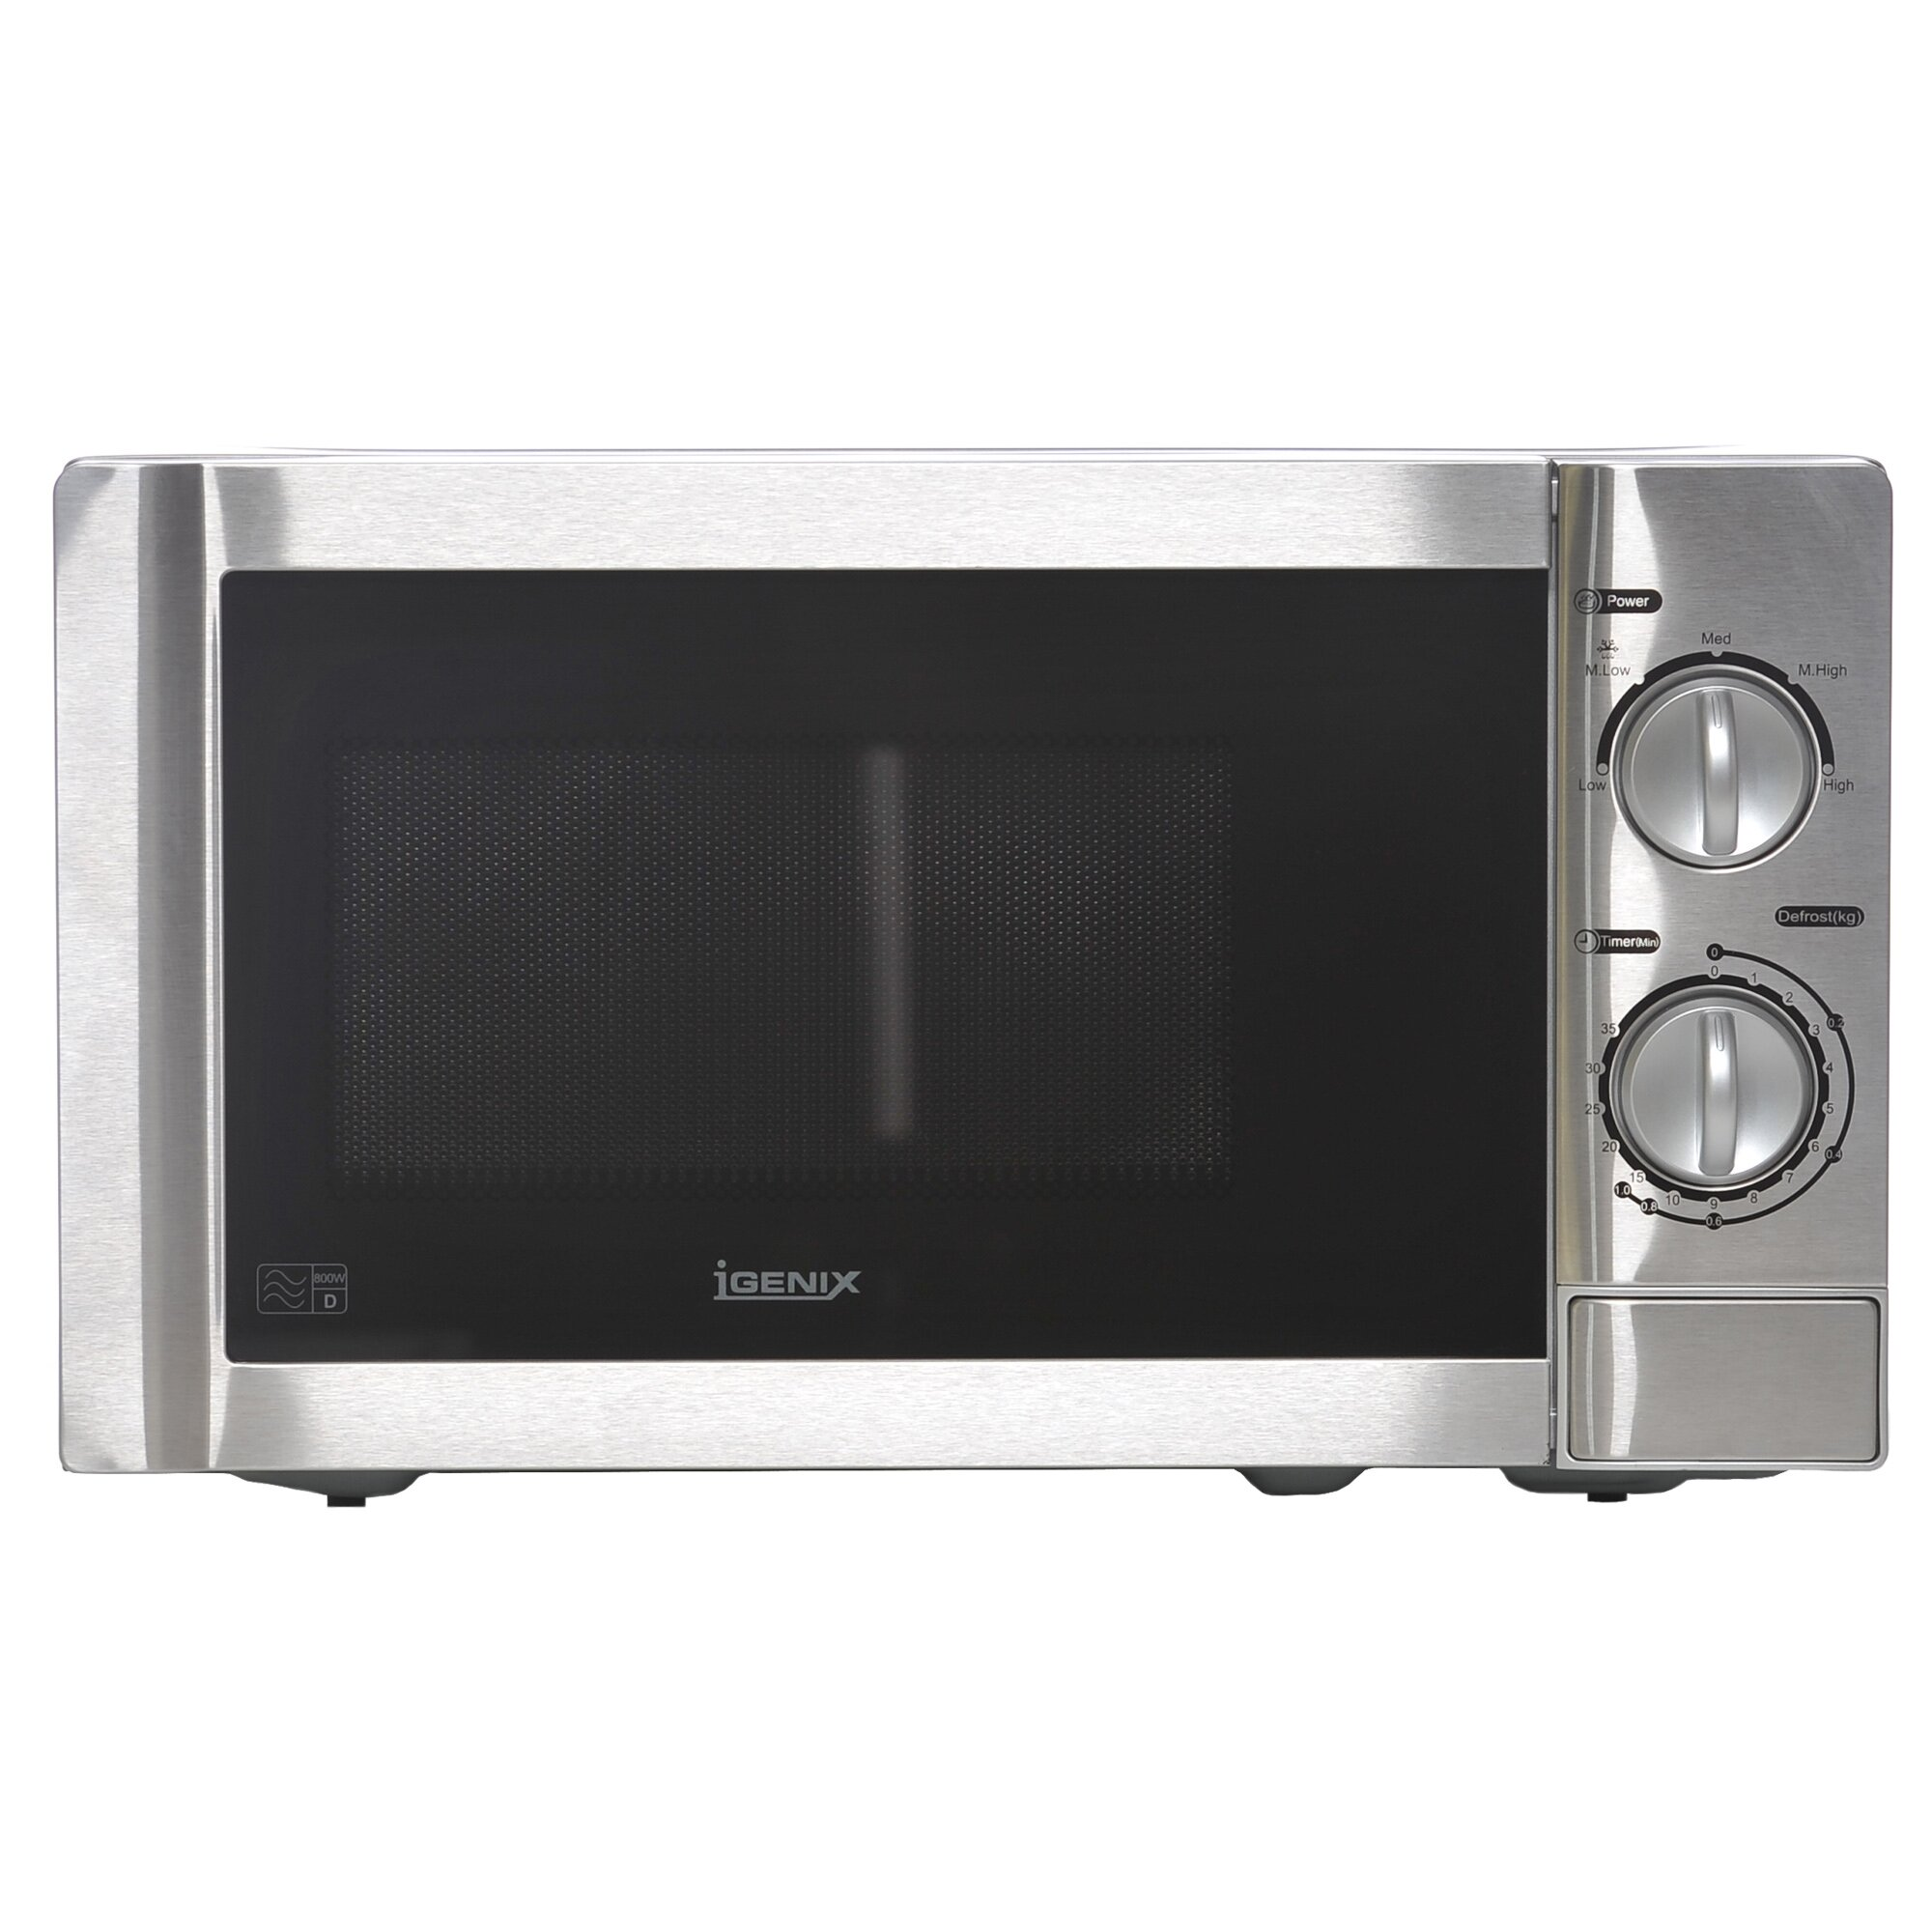 Countertop Microwave Uk : ... 20L 800W Countertop Microwave in Stainless Steel Wayfair.co.uk